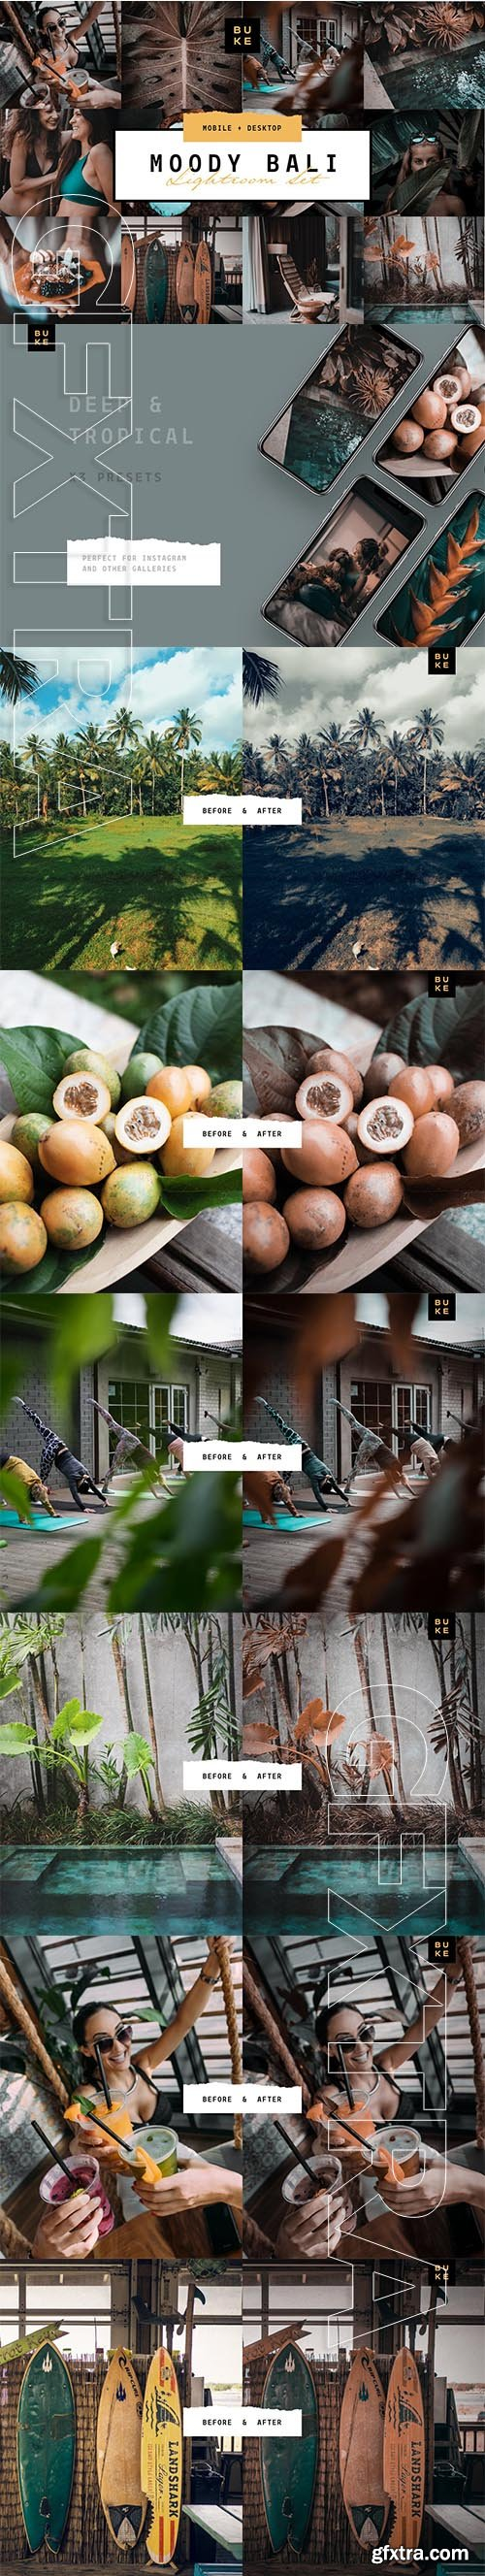 CreativeMarket - MOODY BALI TRAVEL LIGHTROOM PRESETS 3916193